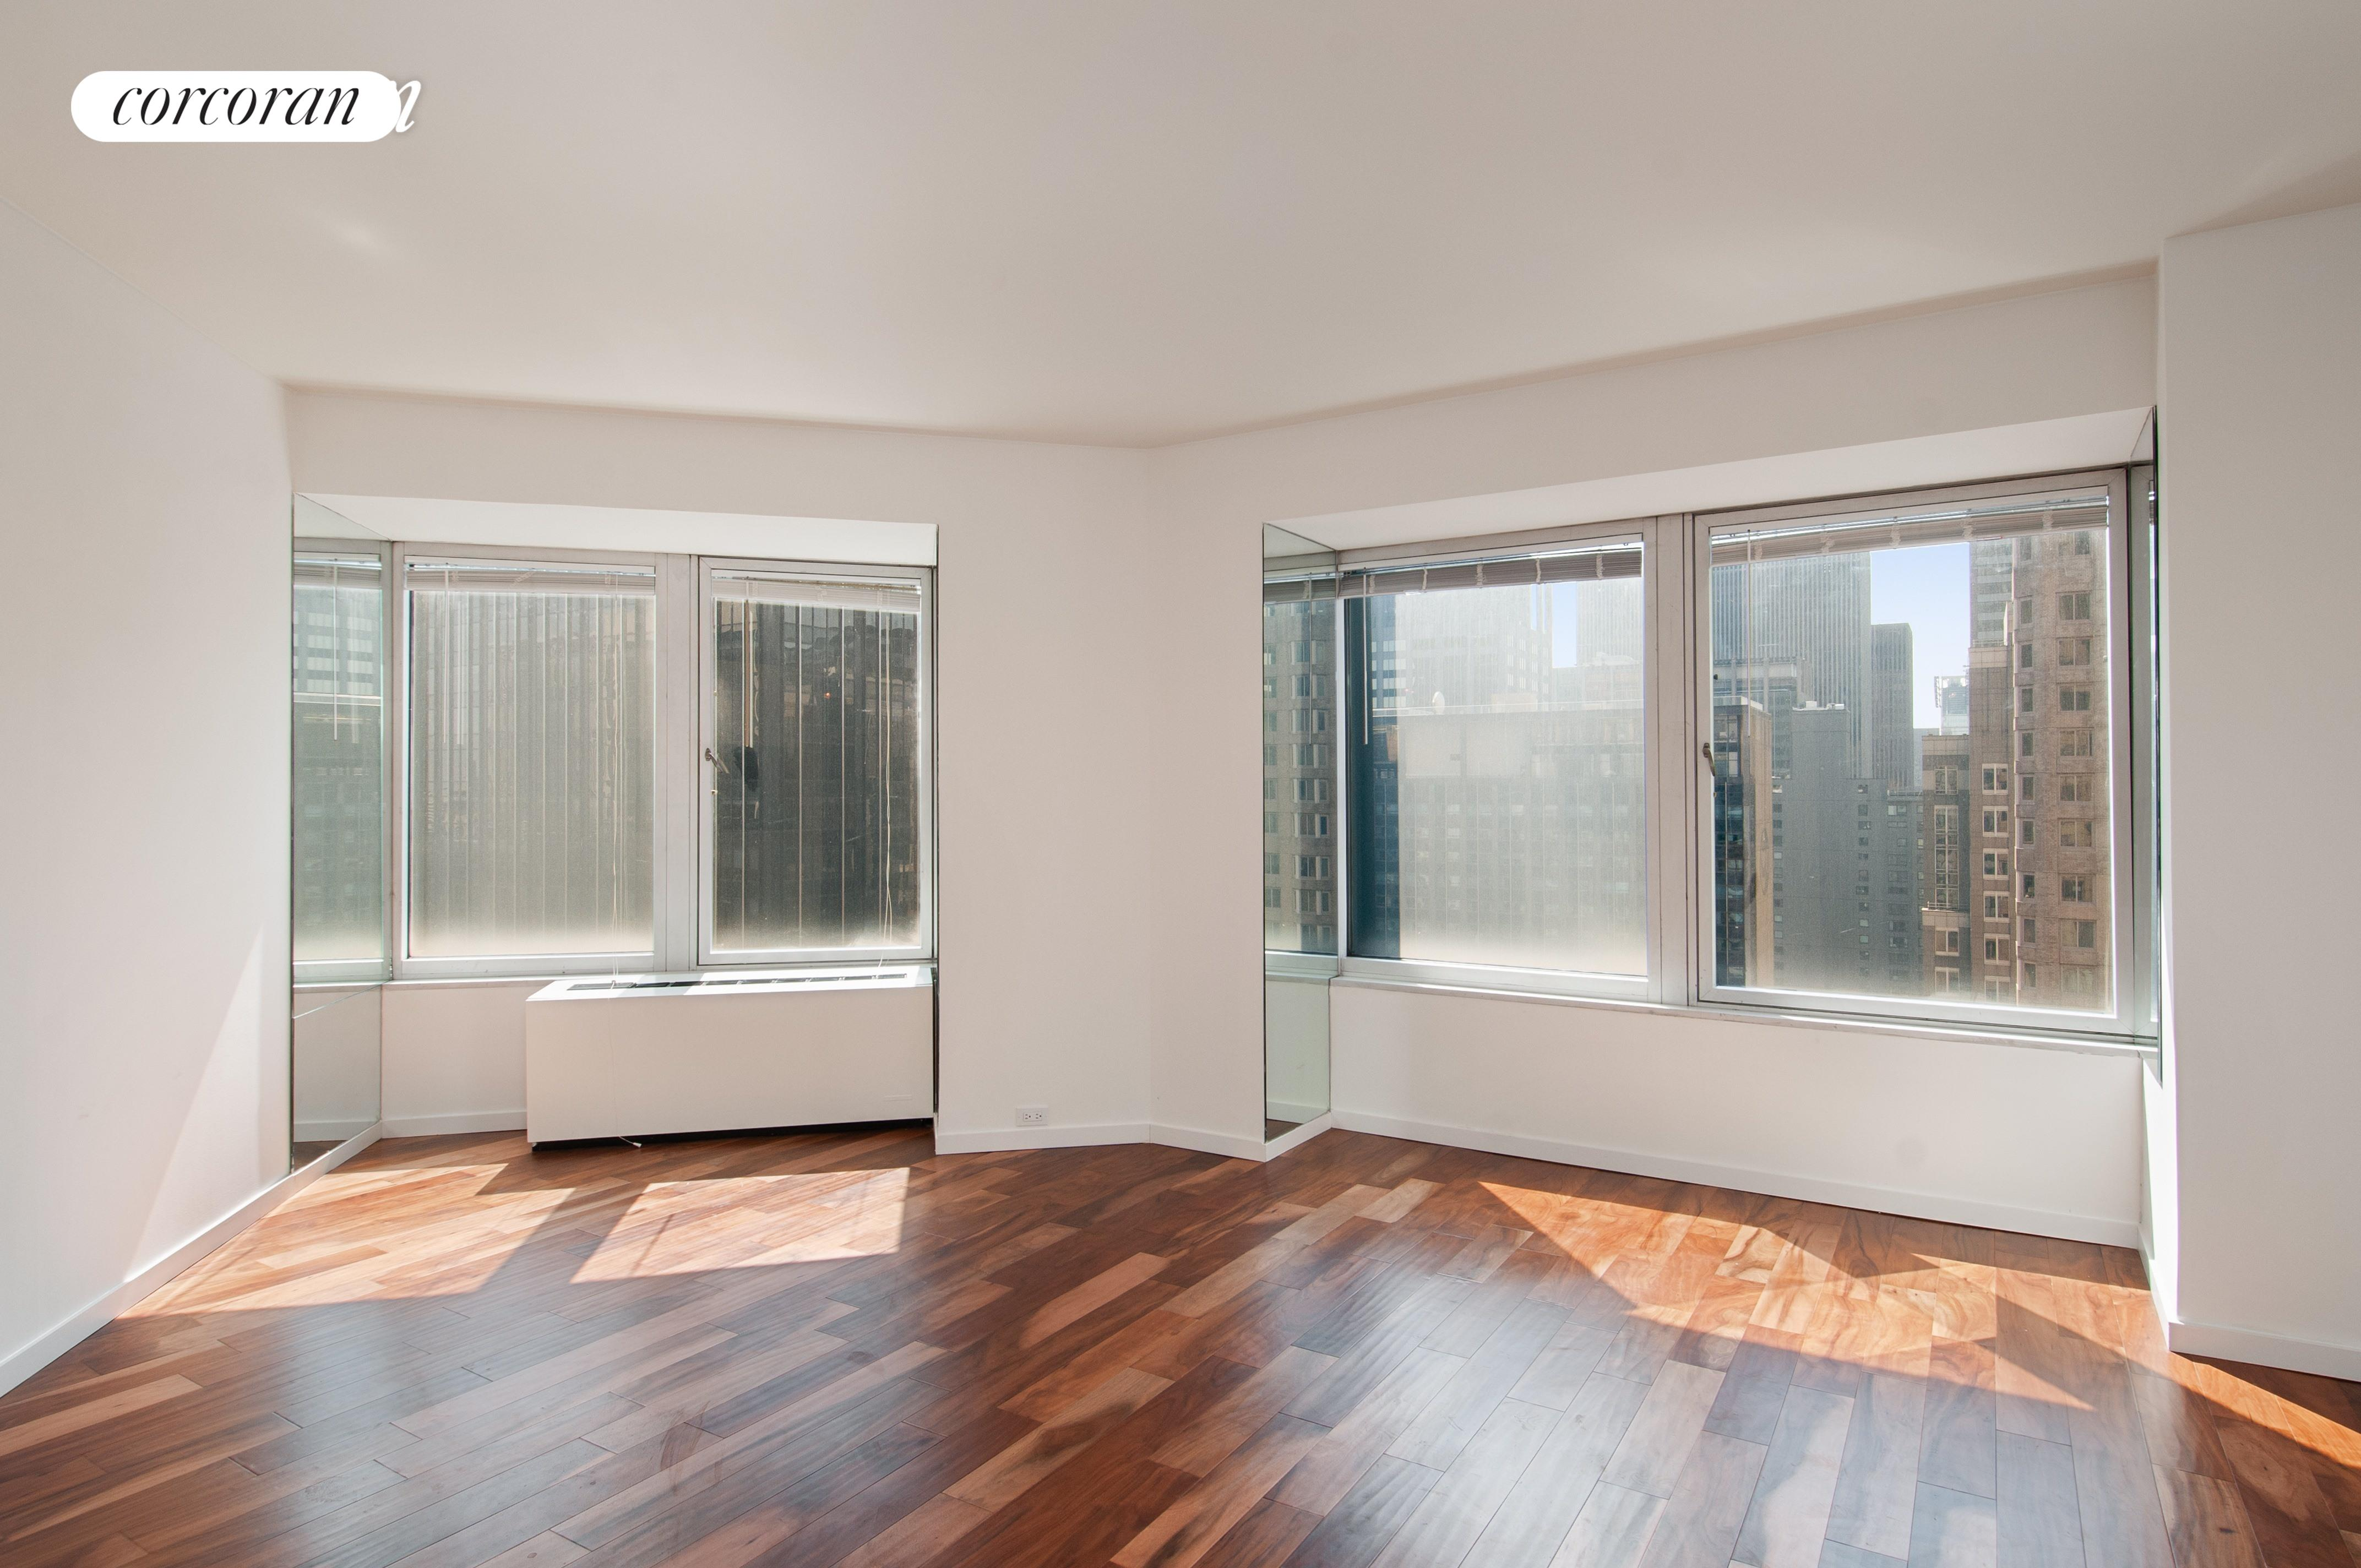 Large one bedroom with one and half bathrooms just came on the market. Located In heart of Manhattan, South of Central Park , the Cityspire is a White Glove Luxury condominium with 24 hour doorman /concierge. gym, swimming pool, meeting room and garage. This unit has a brand new hard-wood floor, new appliances, open city and partial river views and generous closet space. Landry room on each floor. Fine Dinning, Shopping and public transportation are all near by. Corporations, diplomats and pied-à-terre are welcome. Sorry no pets. Be the first one to see..